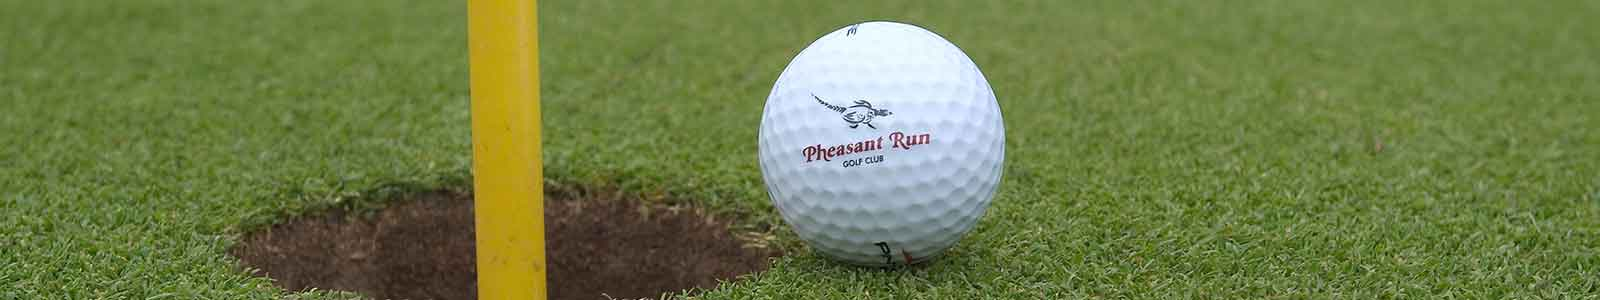 get the pheasant run golf app